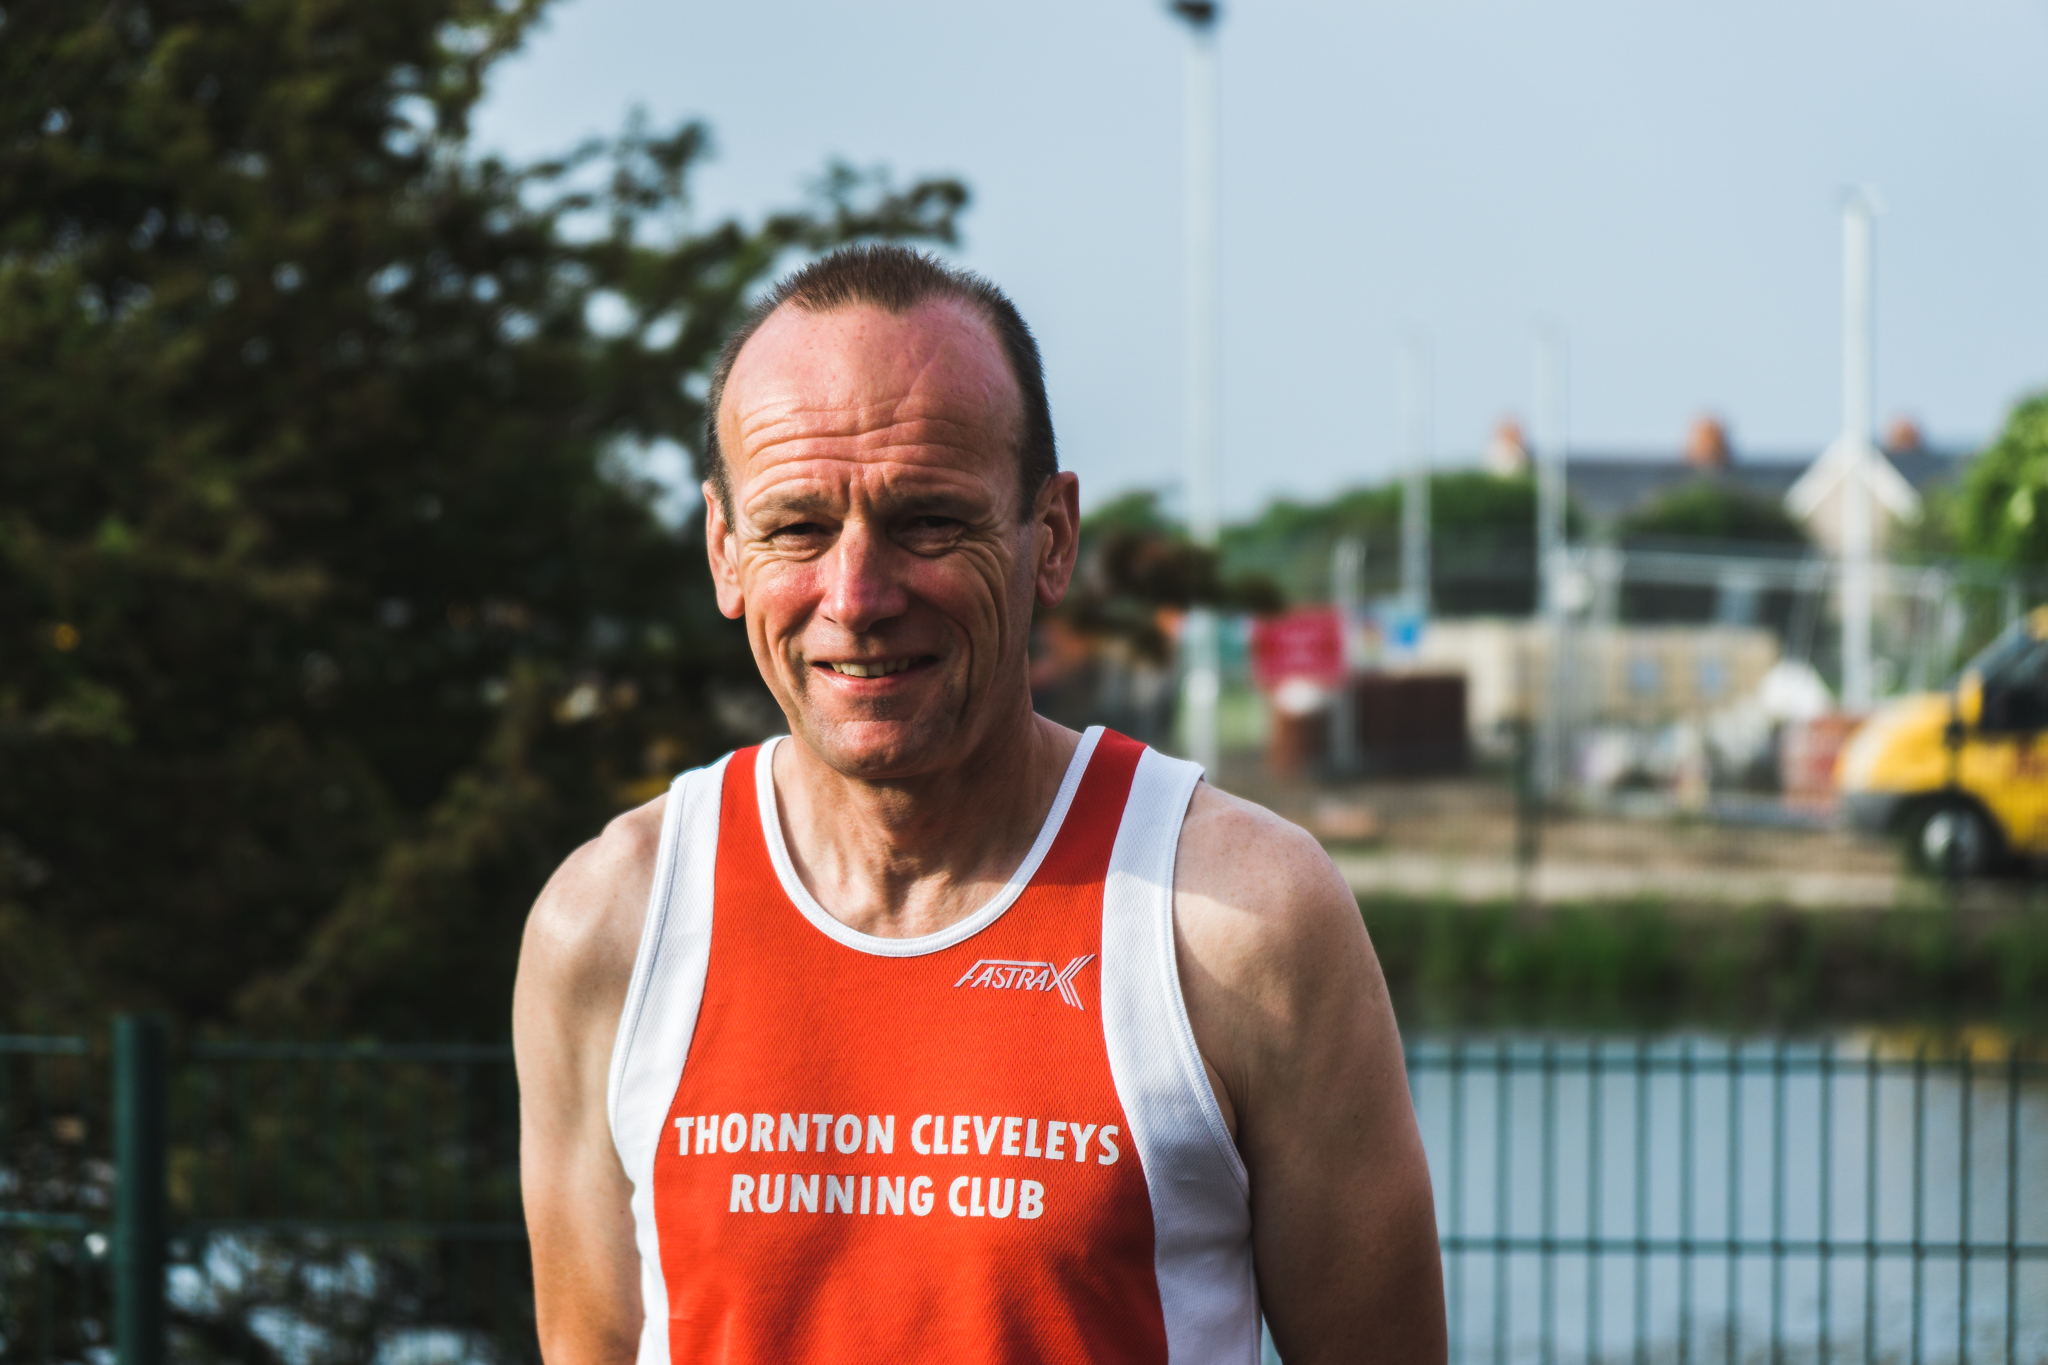 16-06-07 Team photo for Cleveleys and Thornton running club-29.jpg